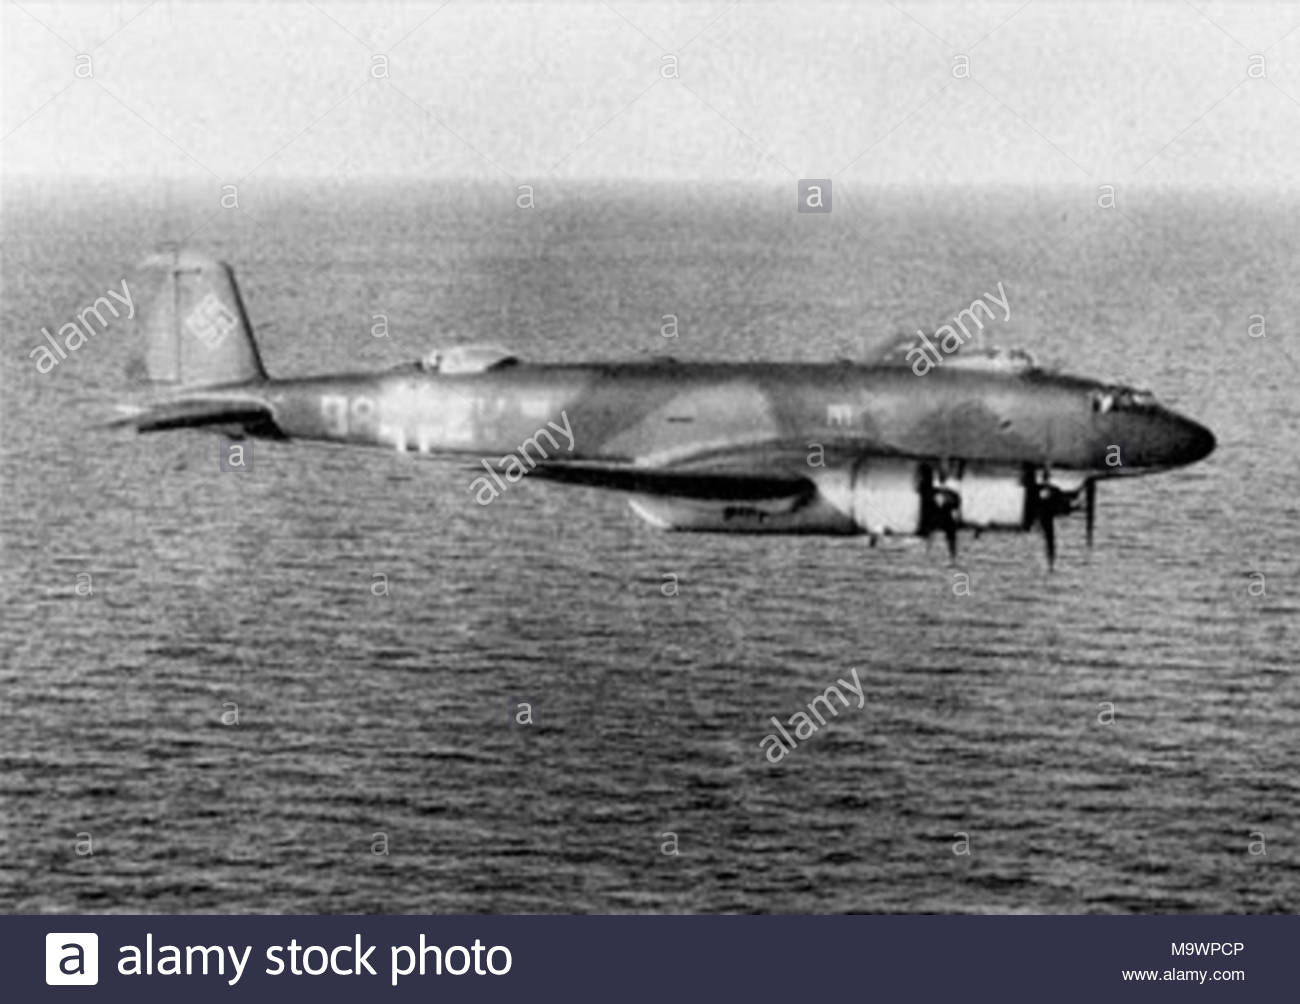 . A German Focke-Wulf Fw 200C-2 Condor long range reconnaissance plane from I./KG 40 (probably F8+EV) in flight. - Stock Image